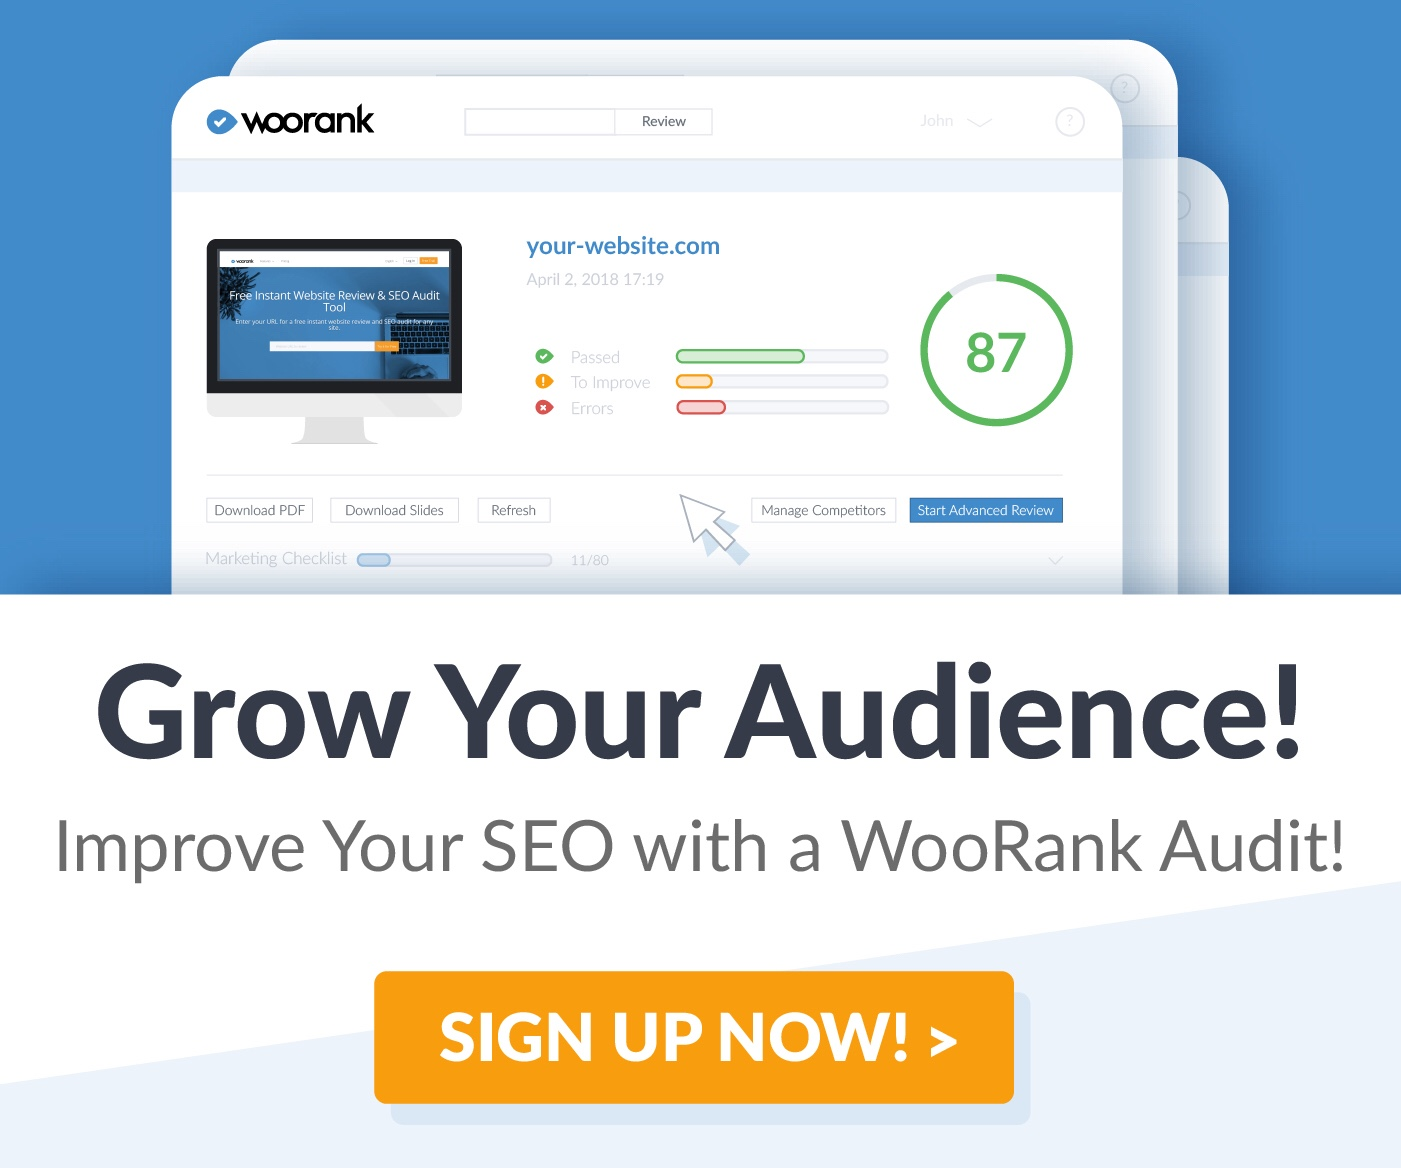 5 ways to rank higher on Google than your competitors